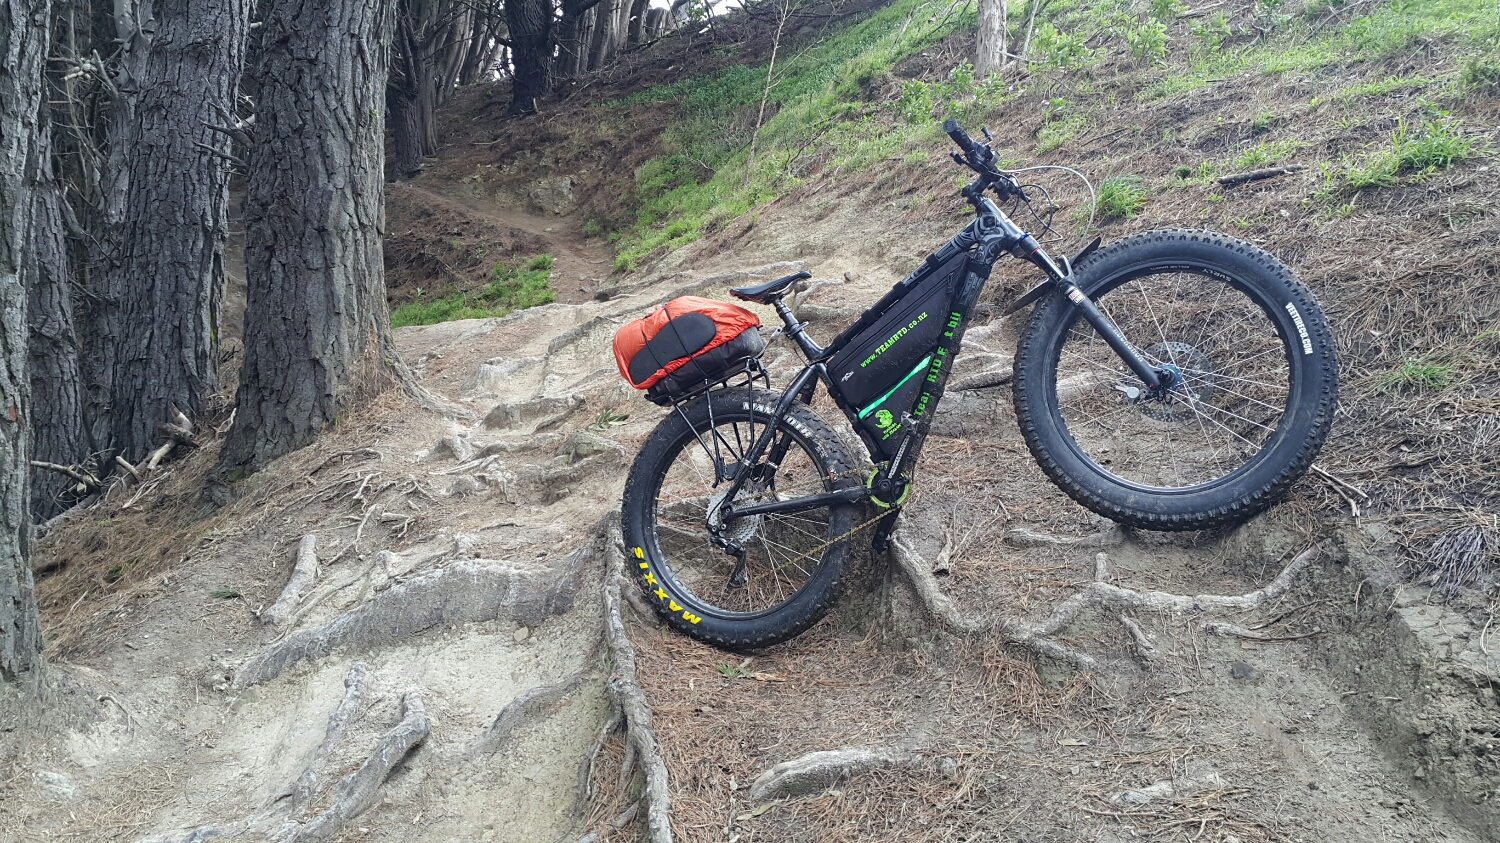 Mt Vic enduro trail. Every thing still there.